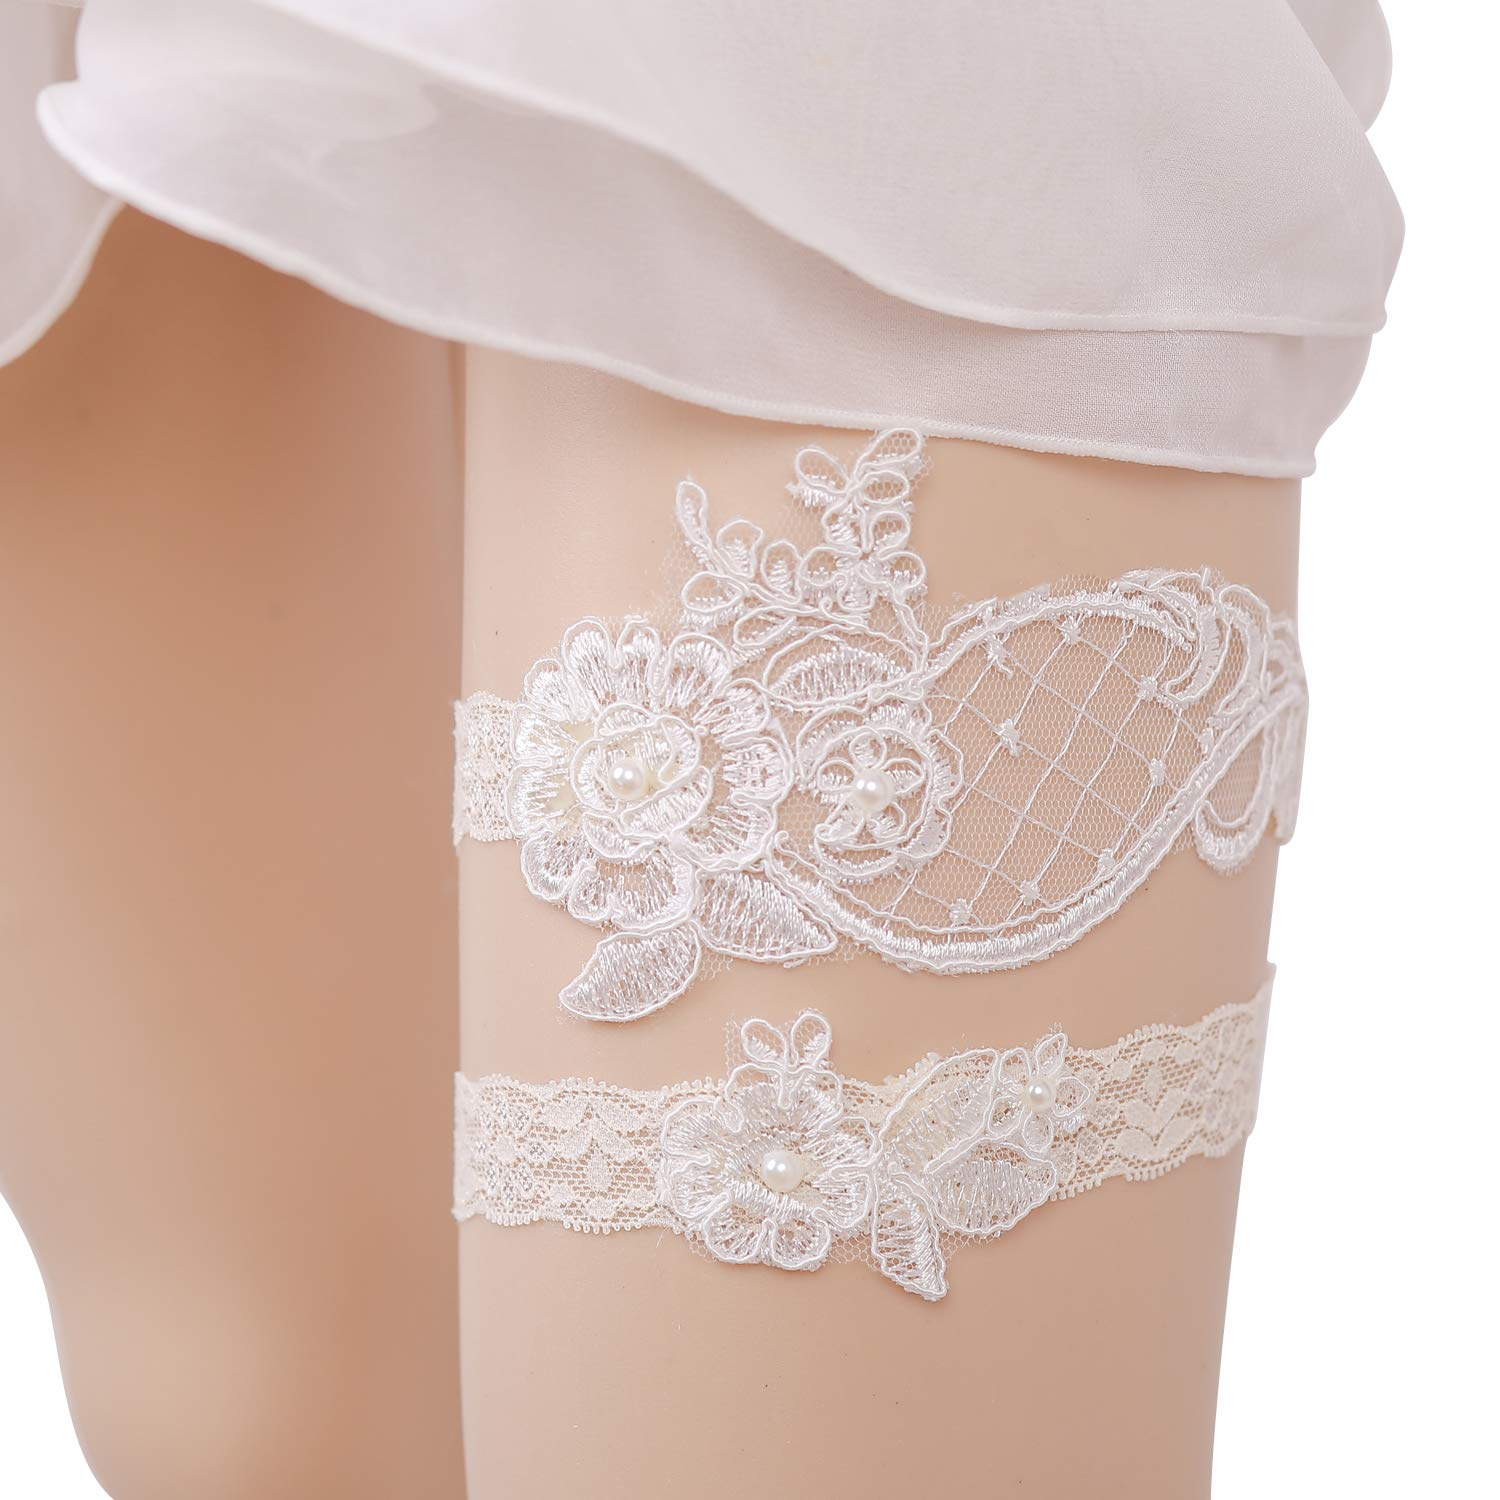 shinyis Handmade Strecth Lace Bridal Wedding Garter Set with Toss Garter and Keepsake Garter for Bride Dress